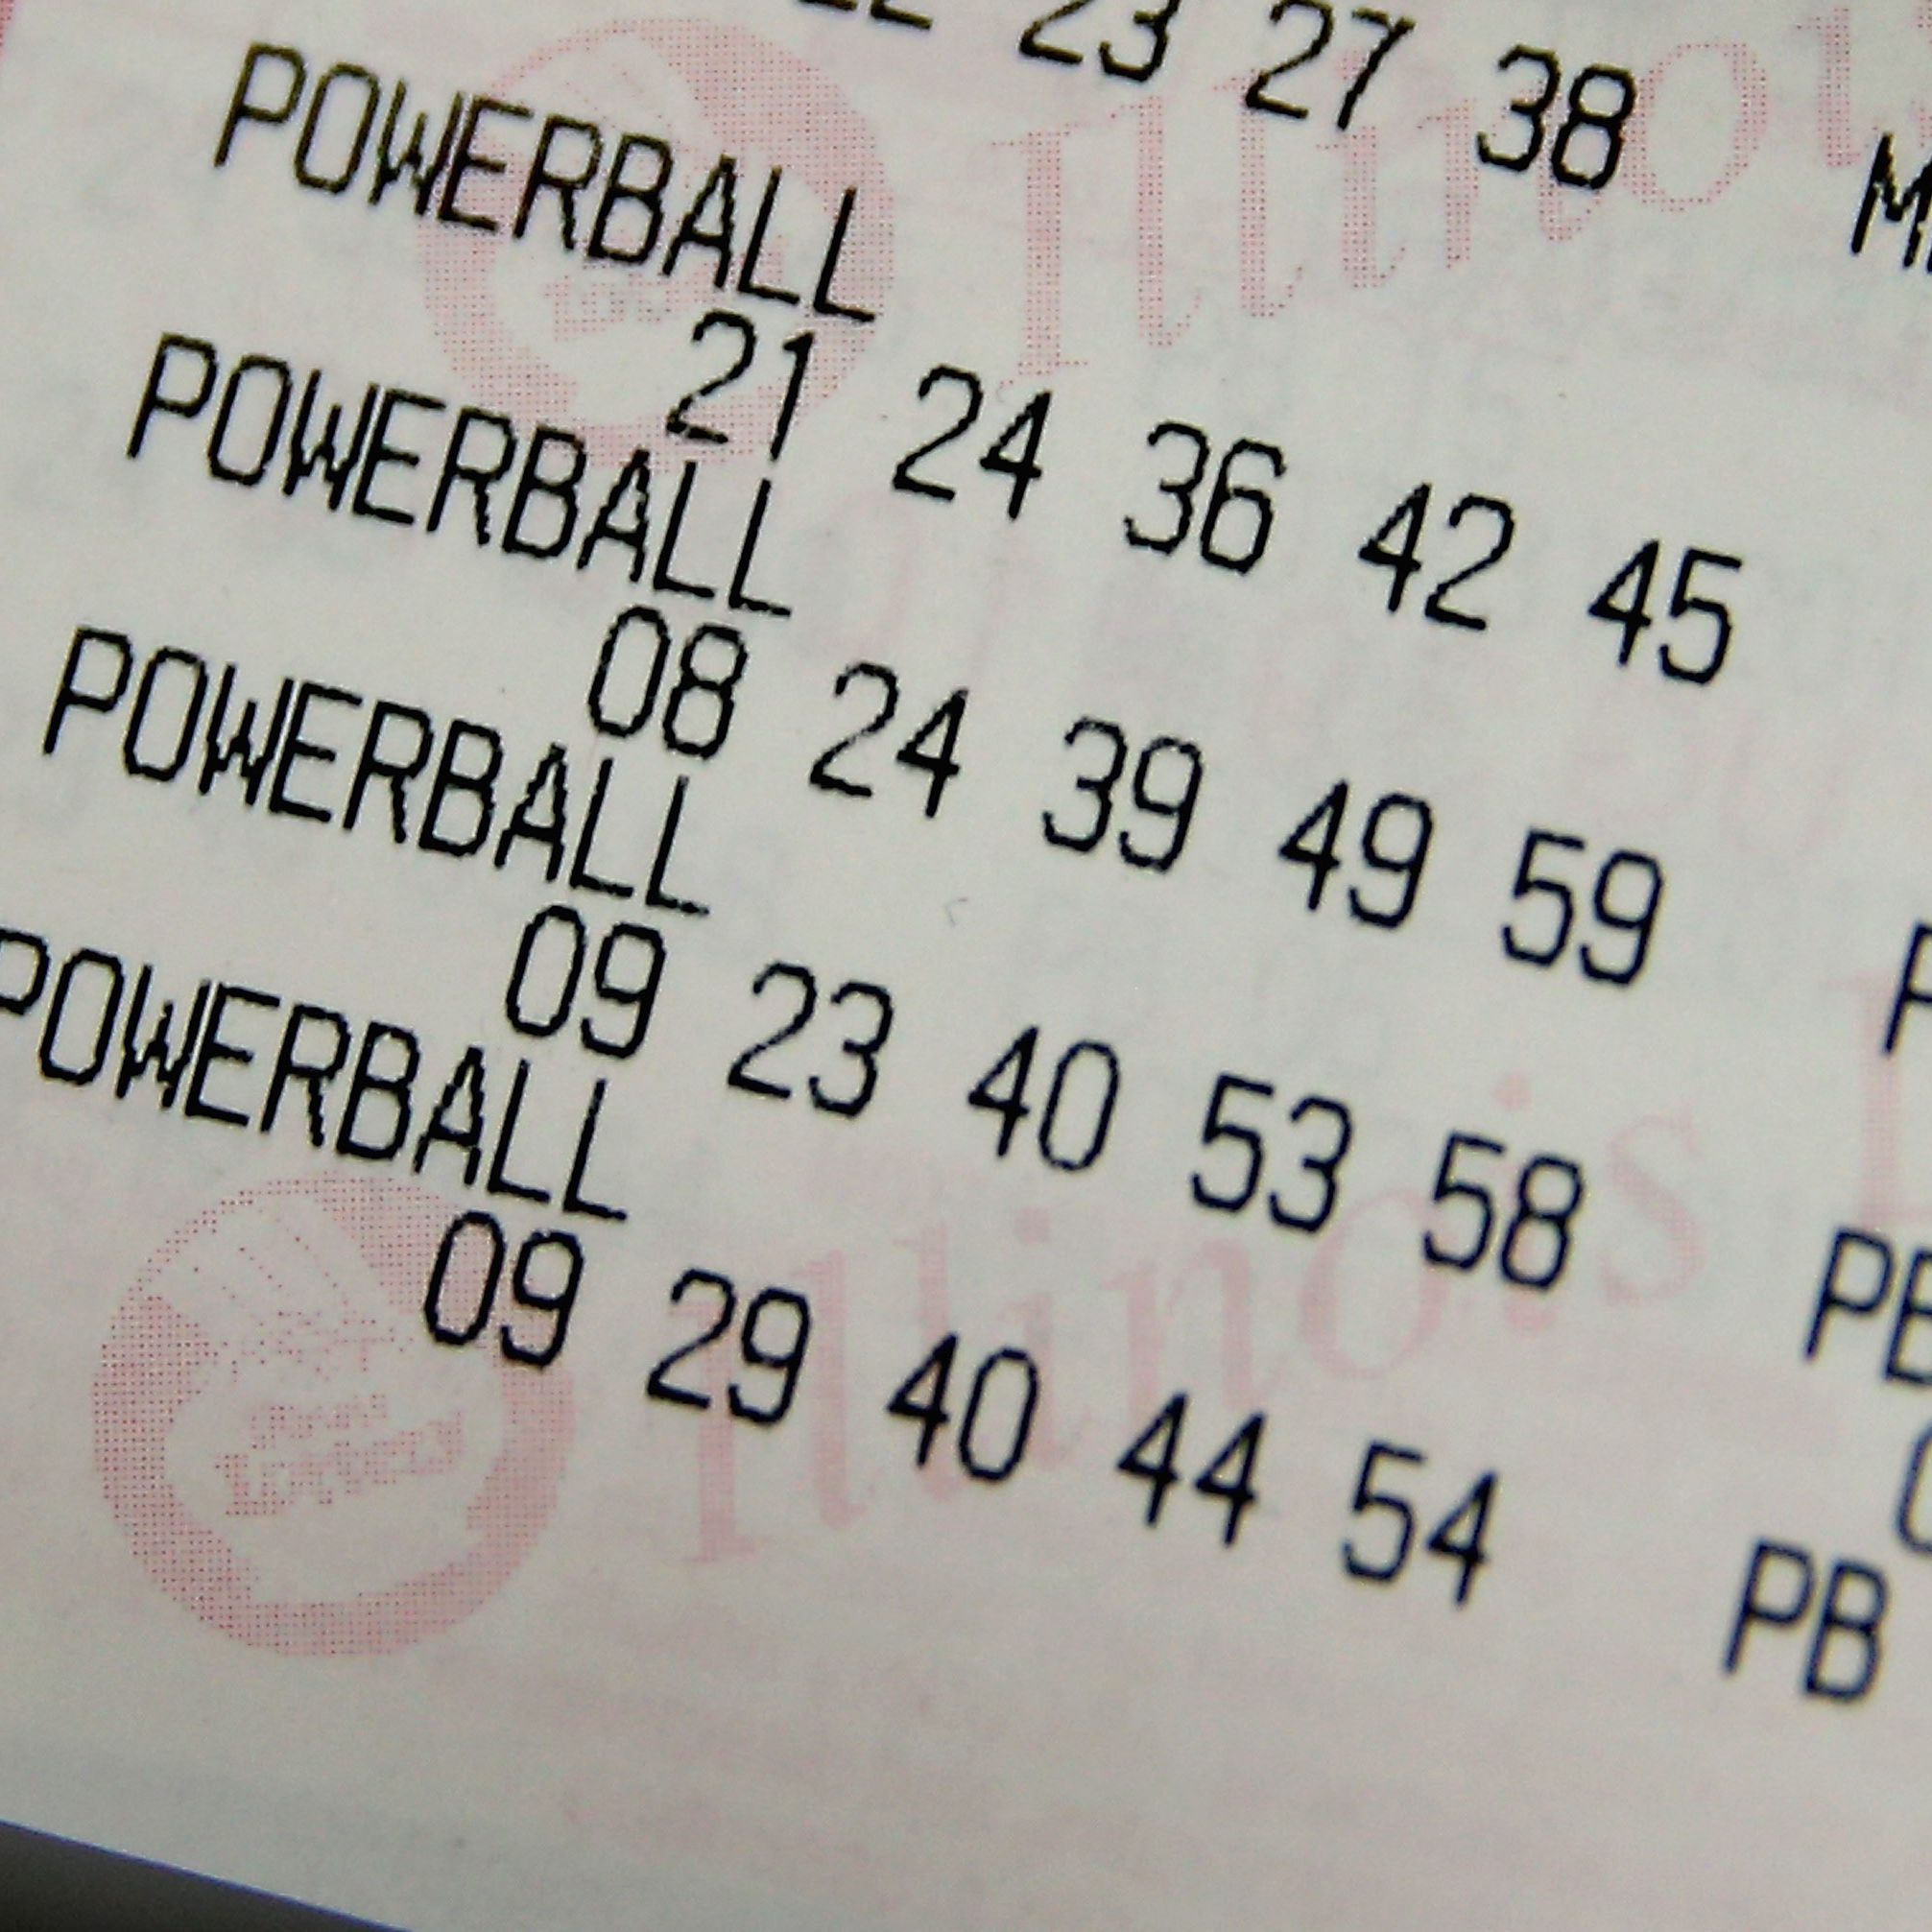 8 Smart Things to Do Before Claiming a Powerball Jackpot